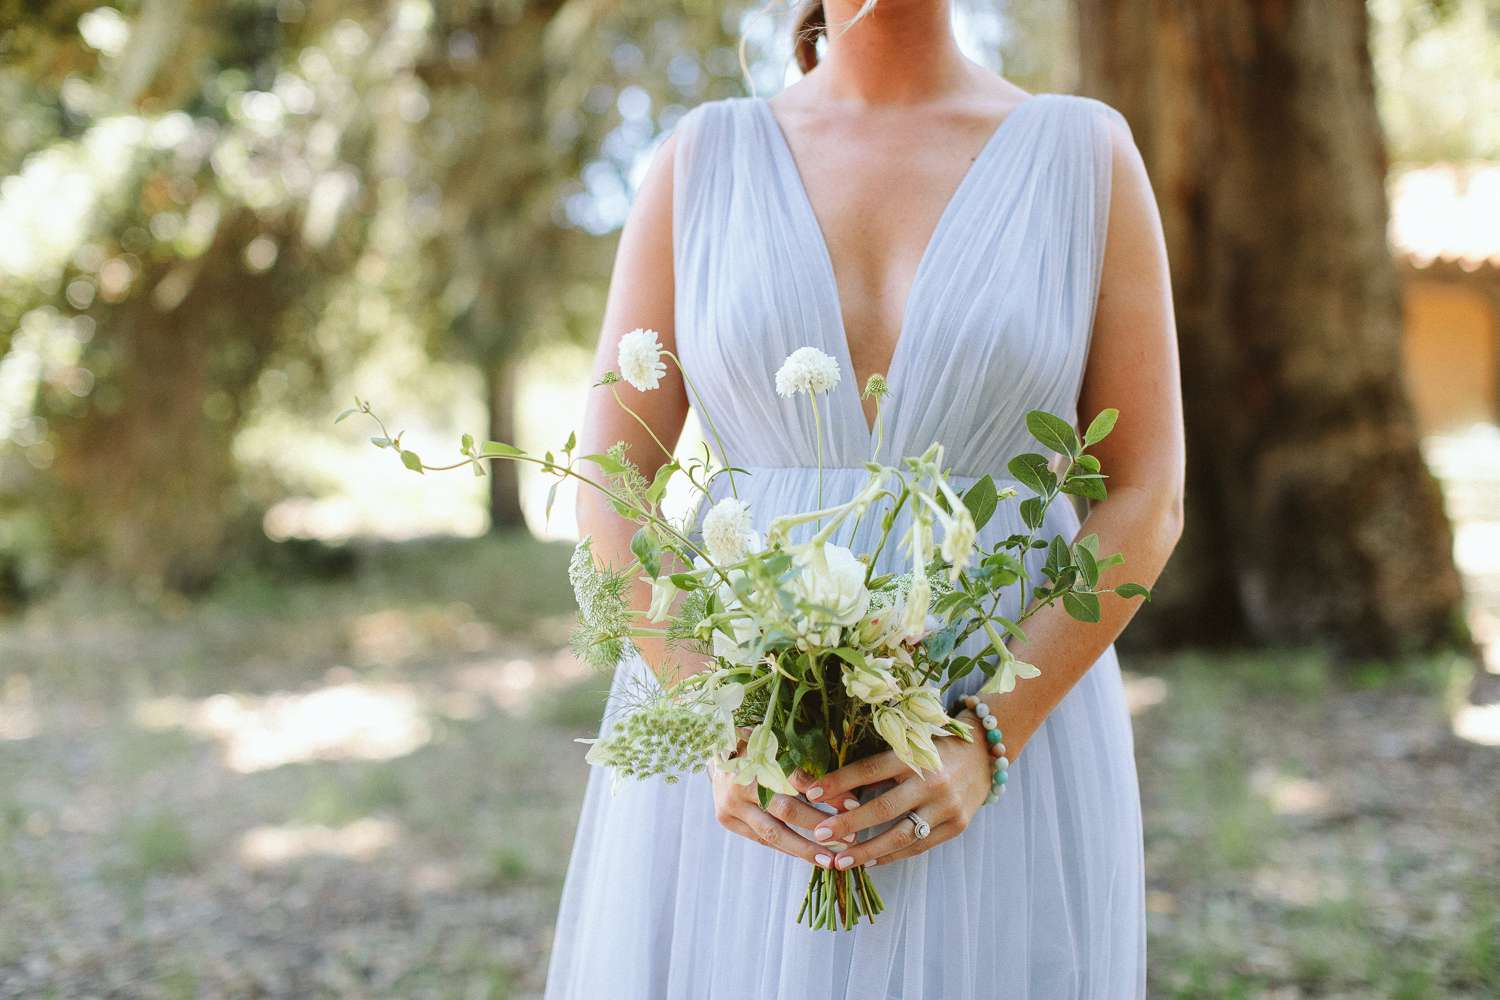 Bridesmaid holding white bouquet of queen anne's lace and cosmos